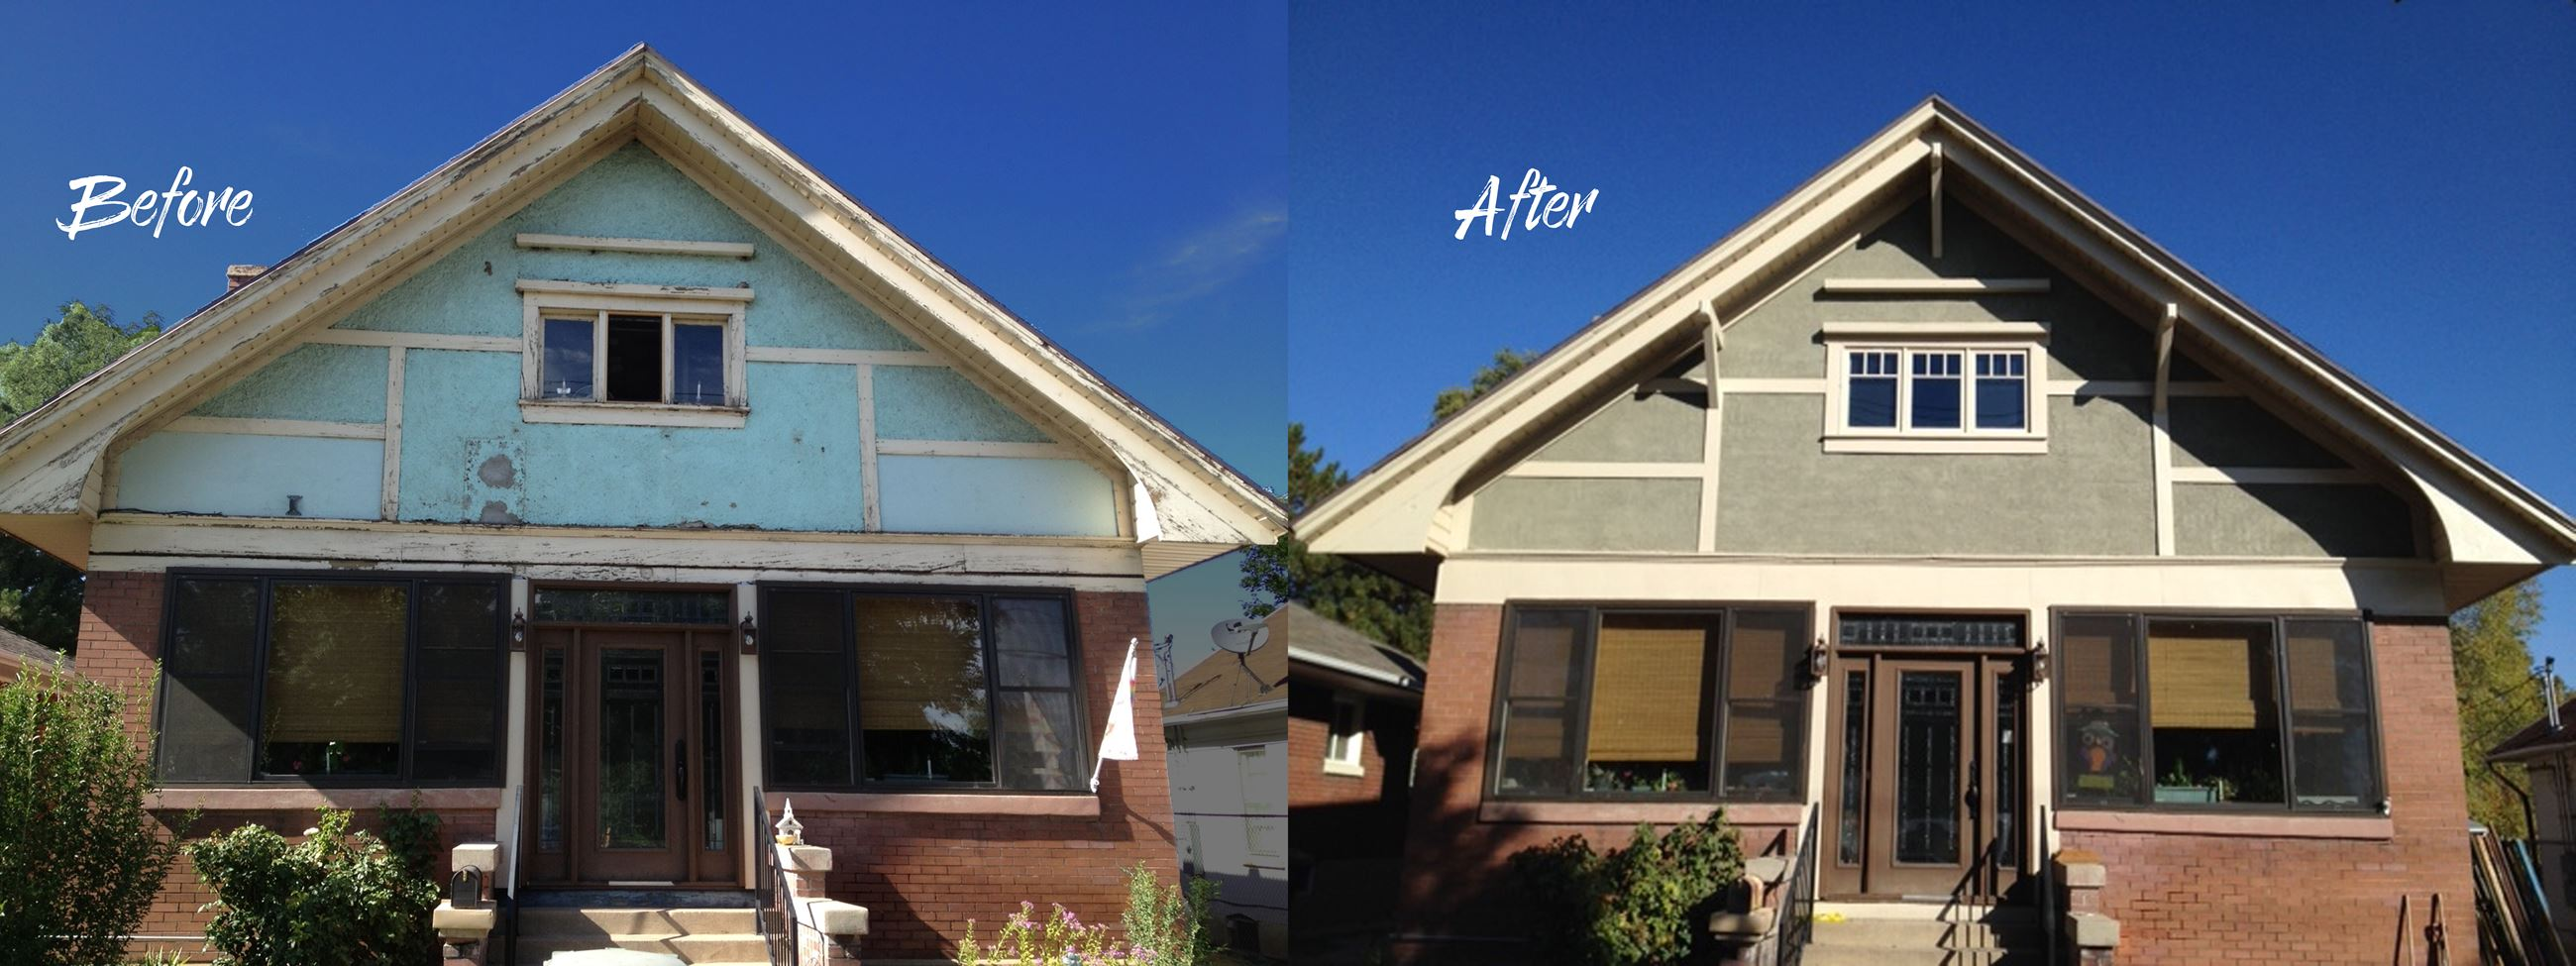 926 27th Street Before-After